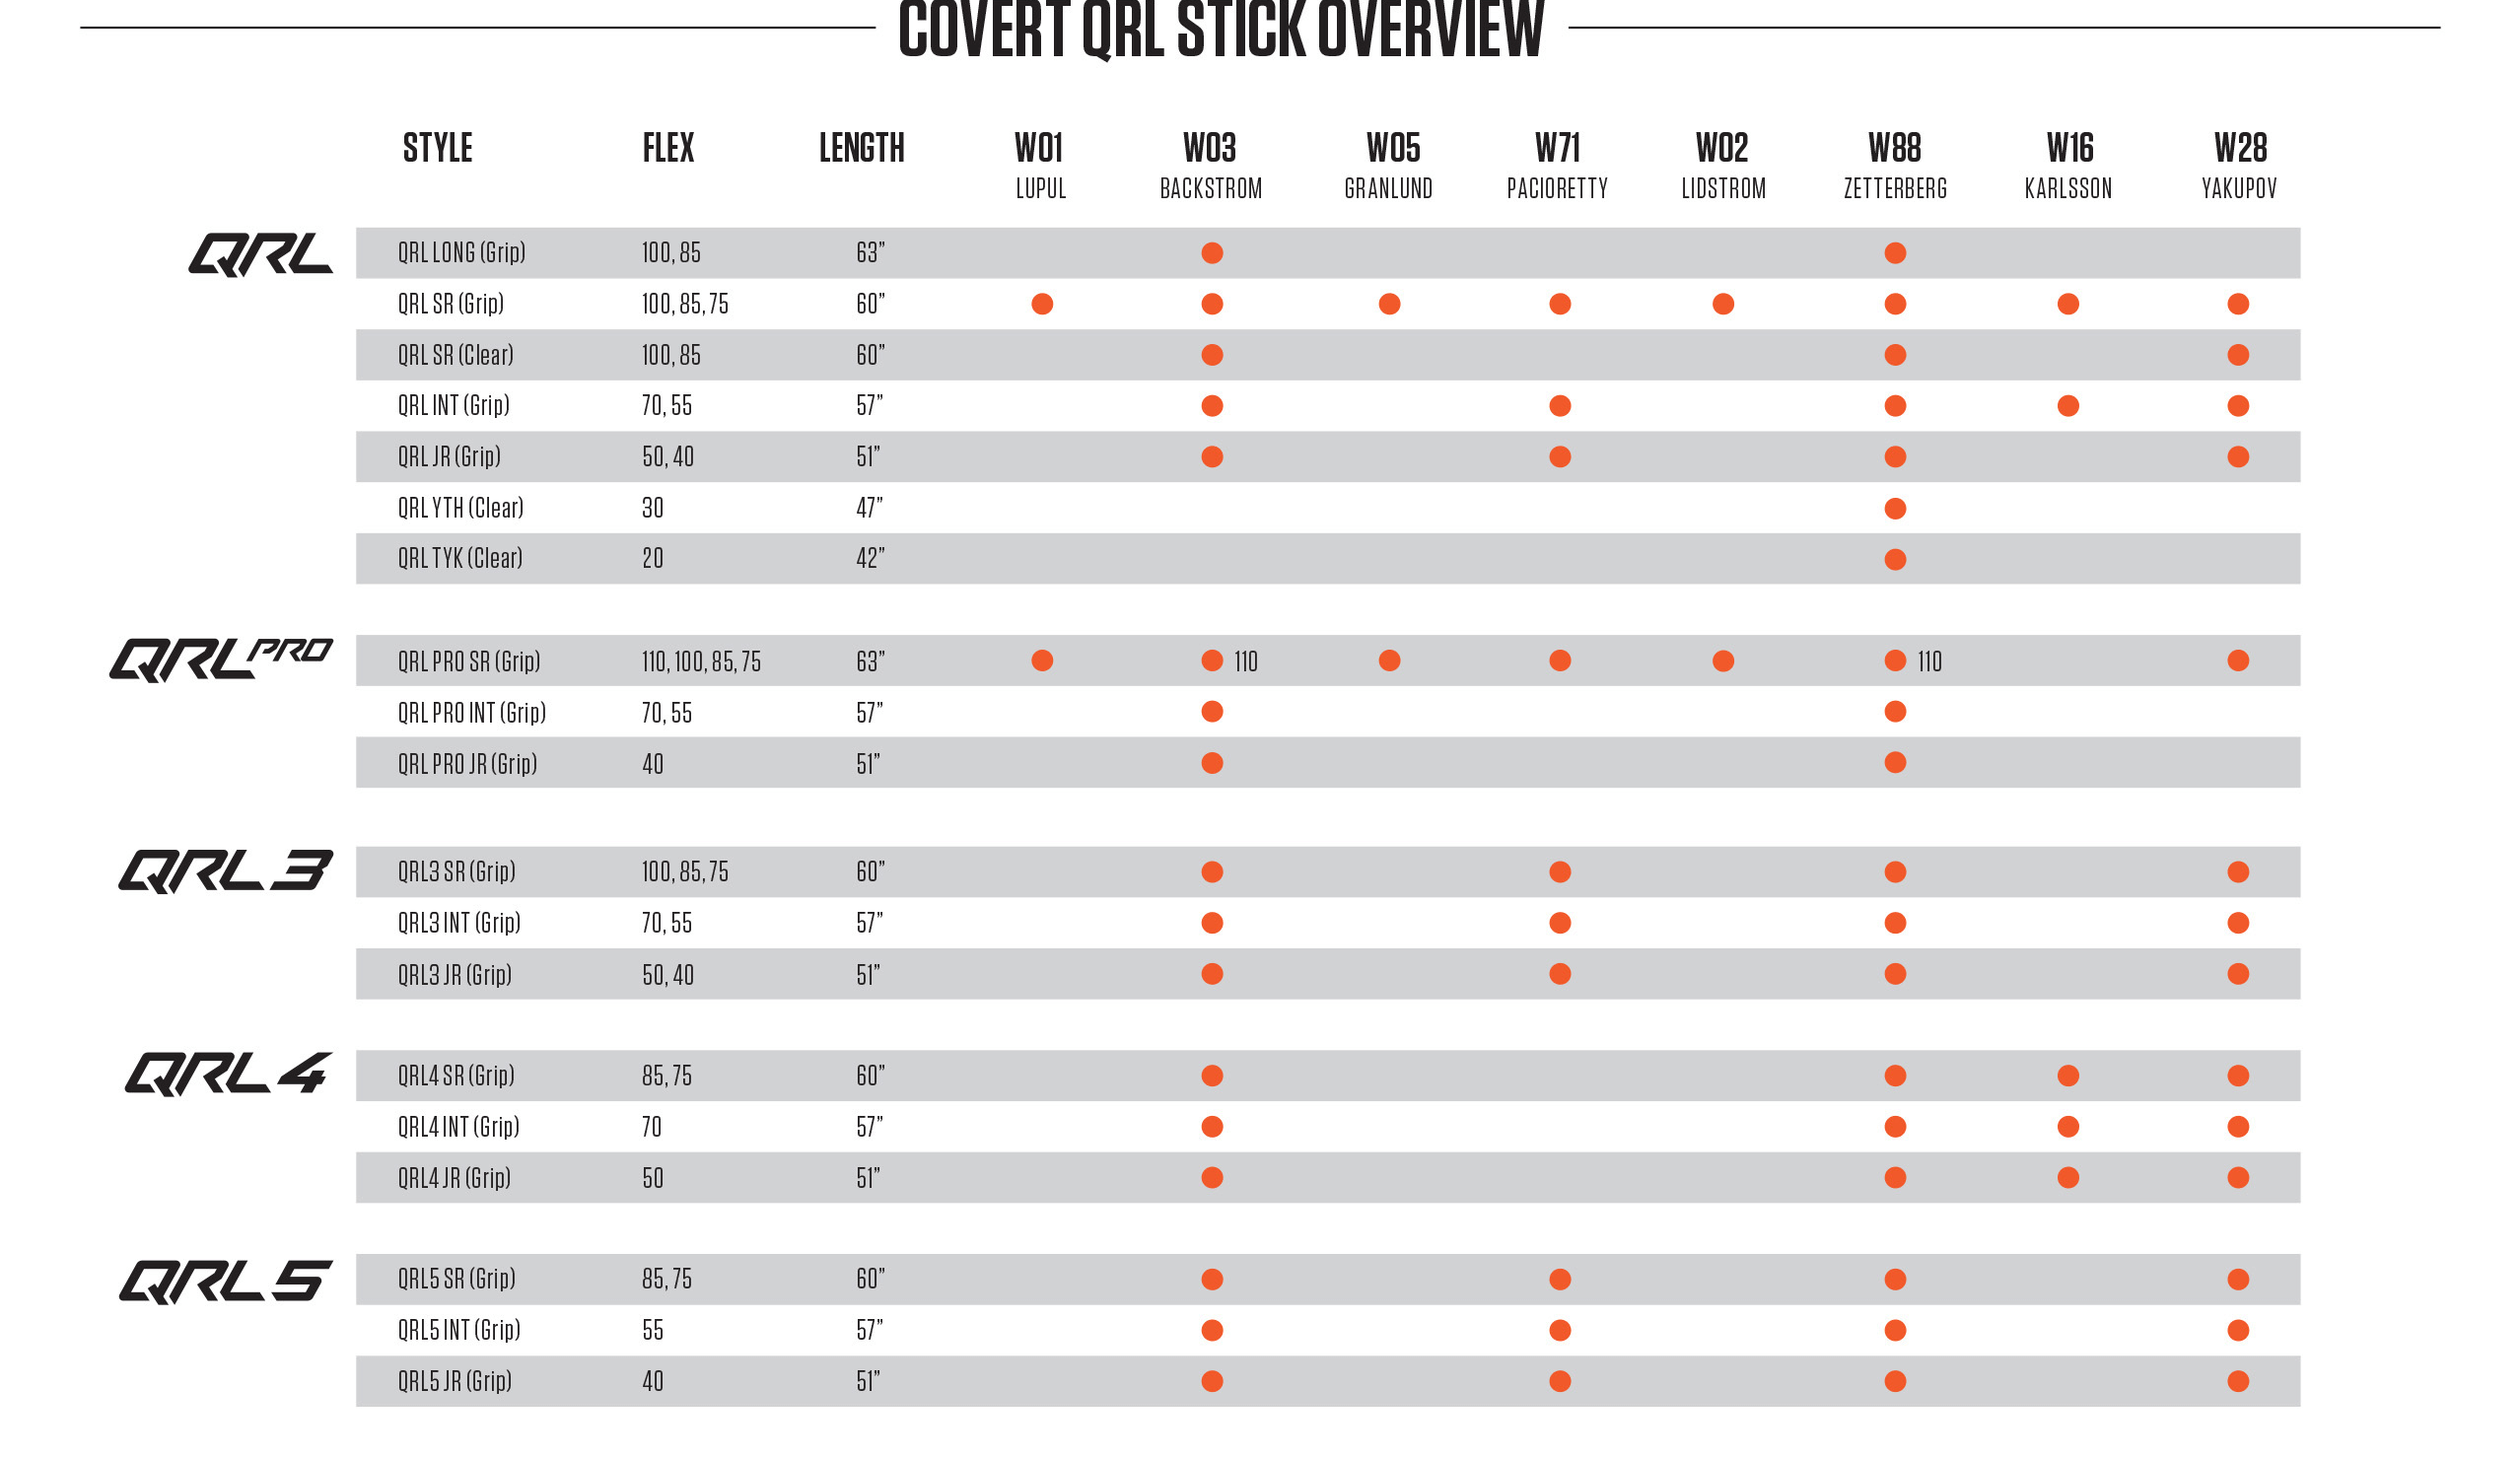 Stick Overview Covert